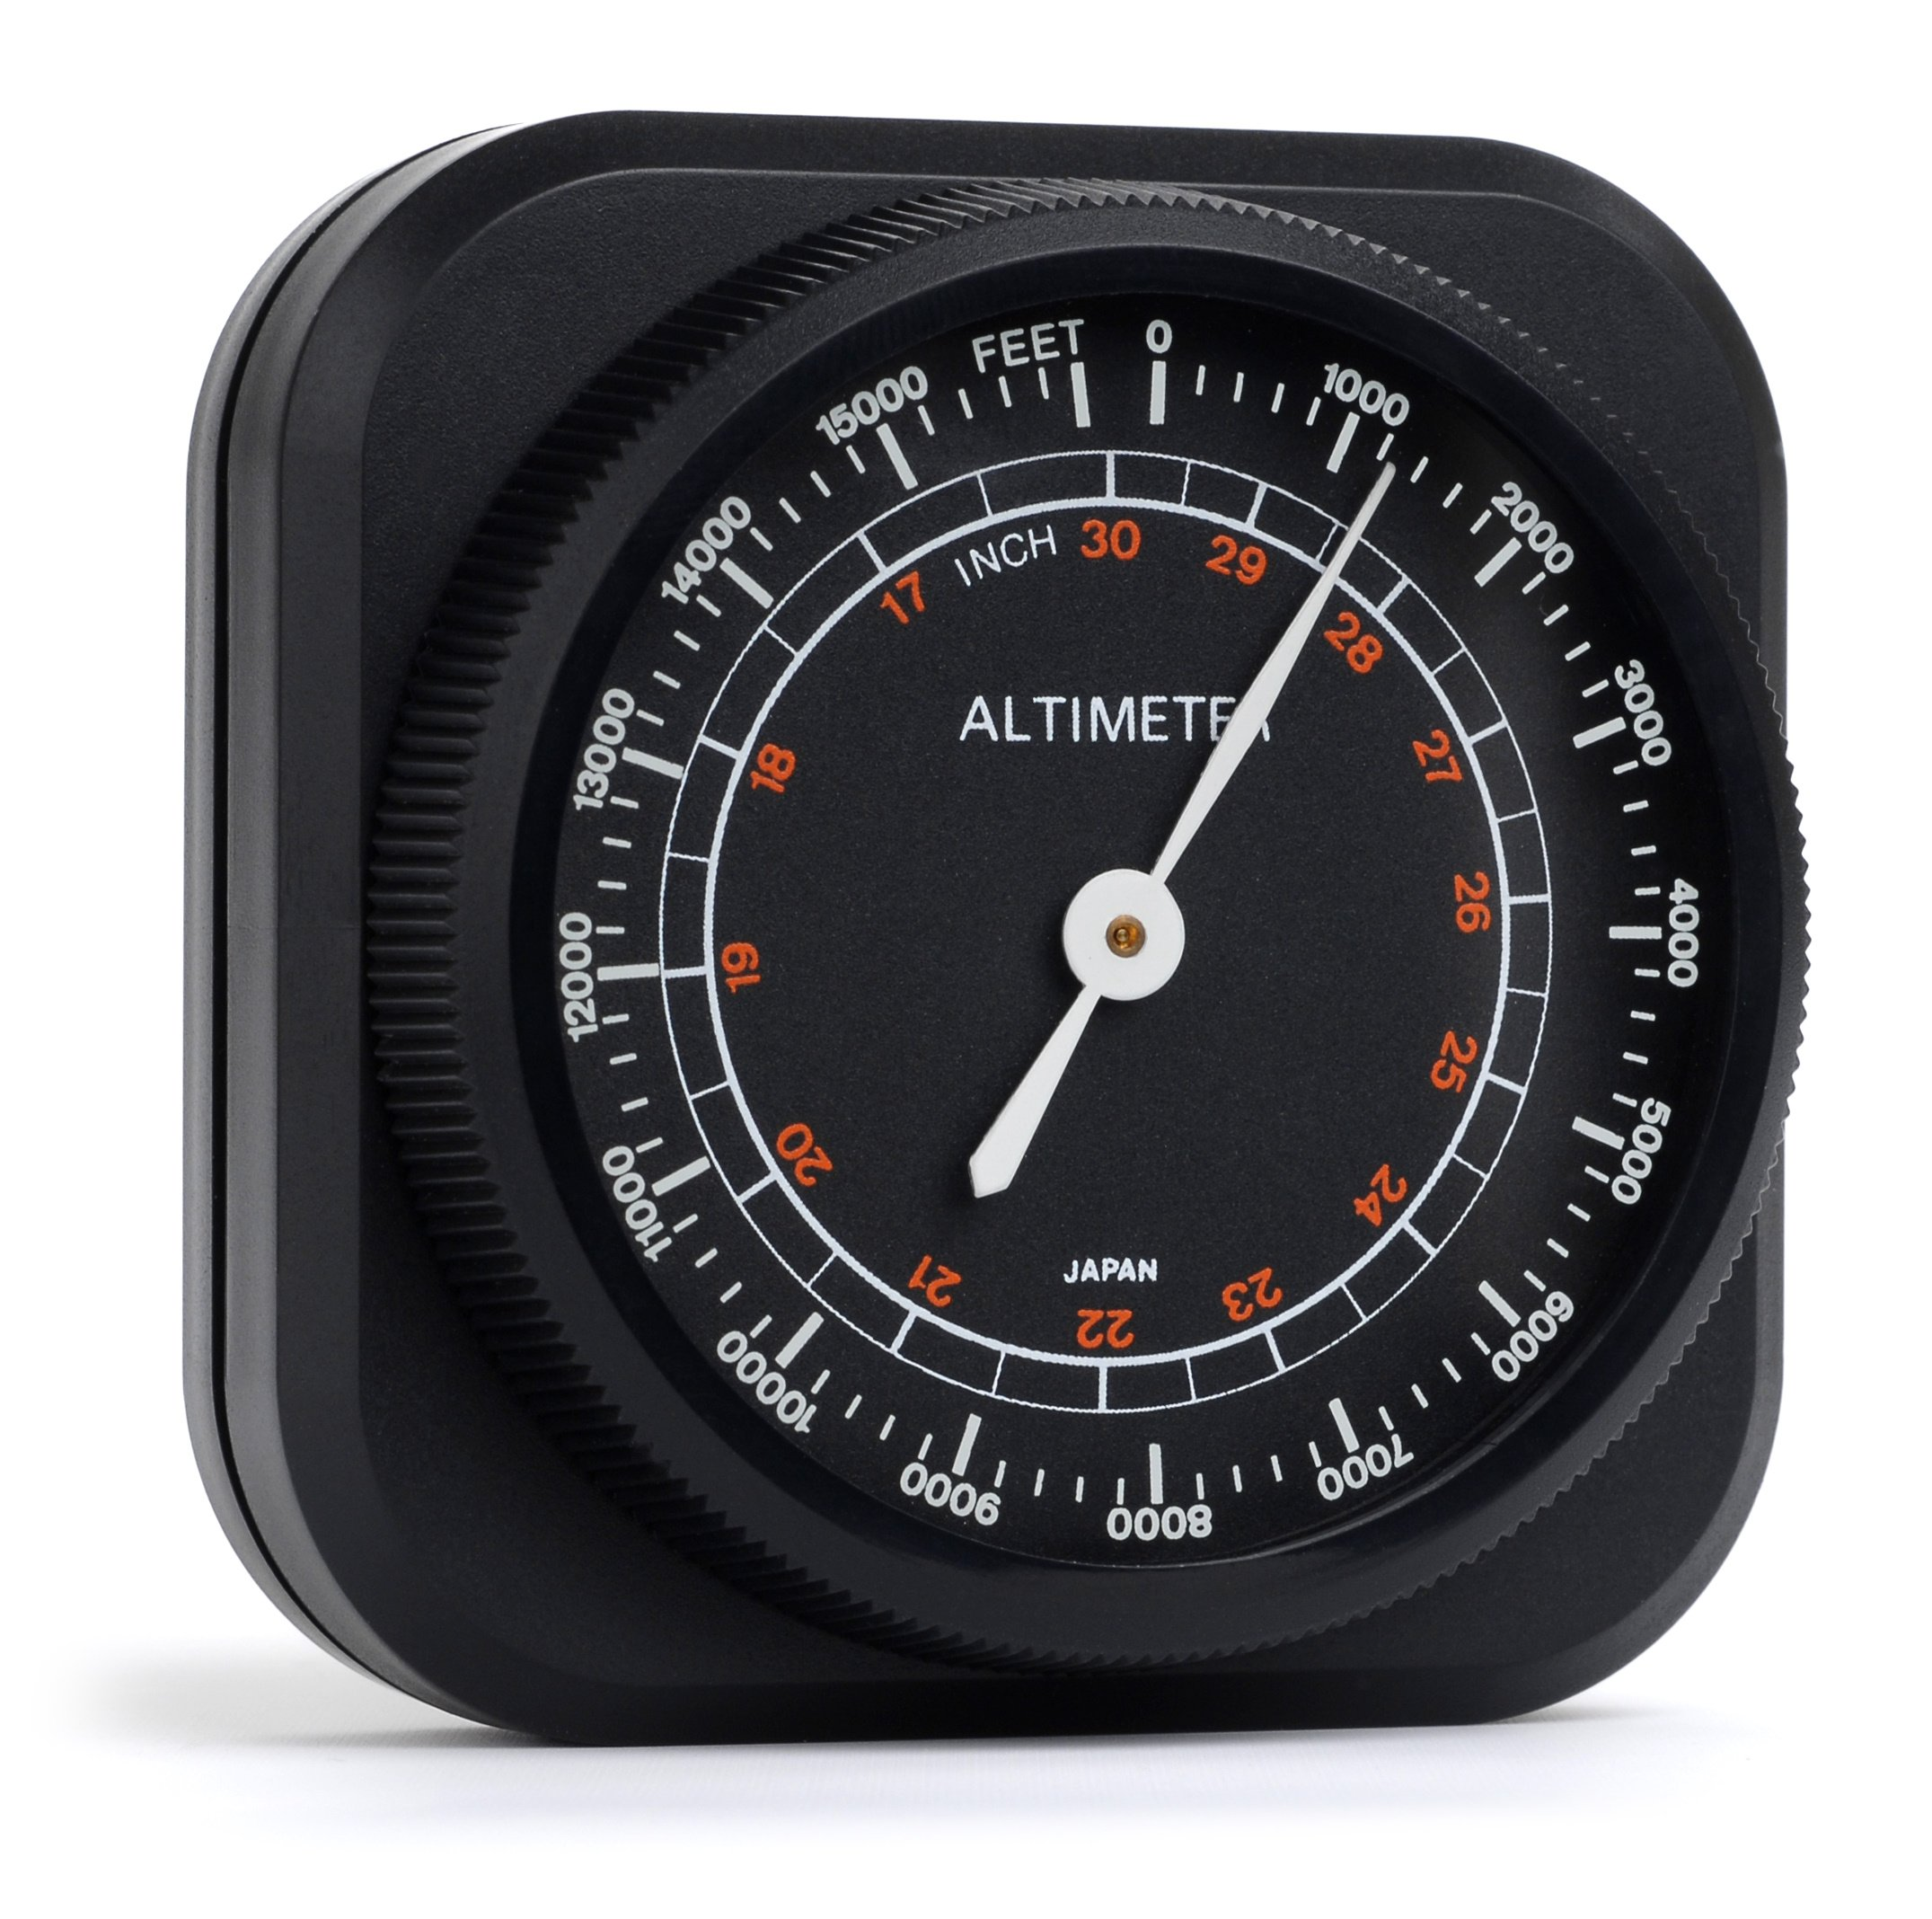 Swift Optical 478 Altimeter/Barometer Weather Instrument, 0 to 15,000' Range, 2-1/16'' x 1-15/16'' Size